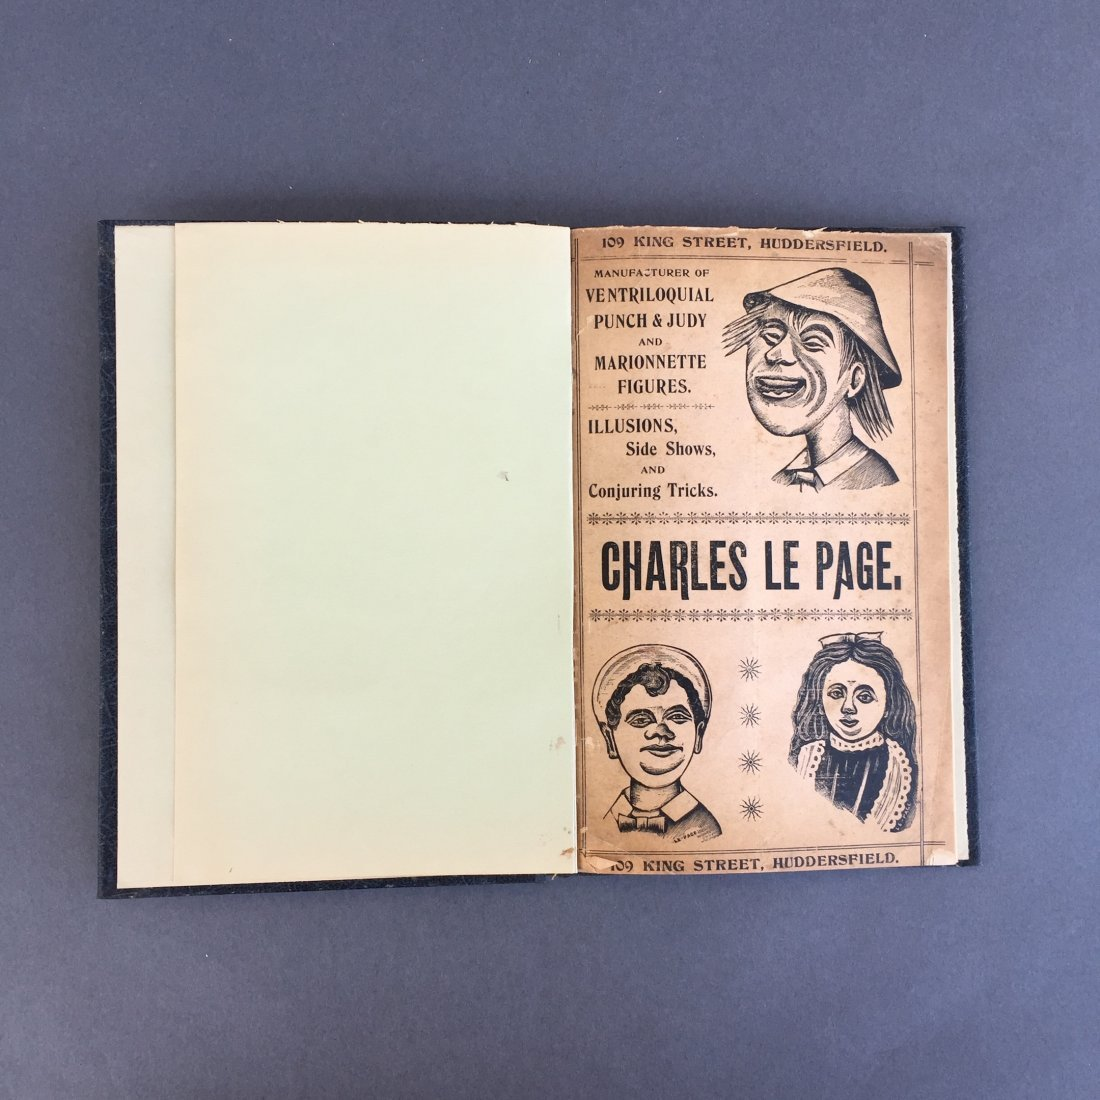 Charles Le Page